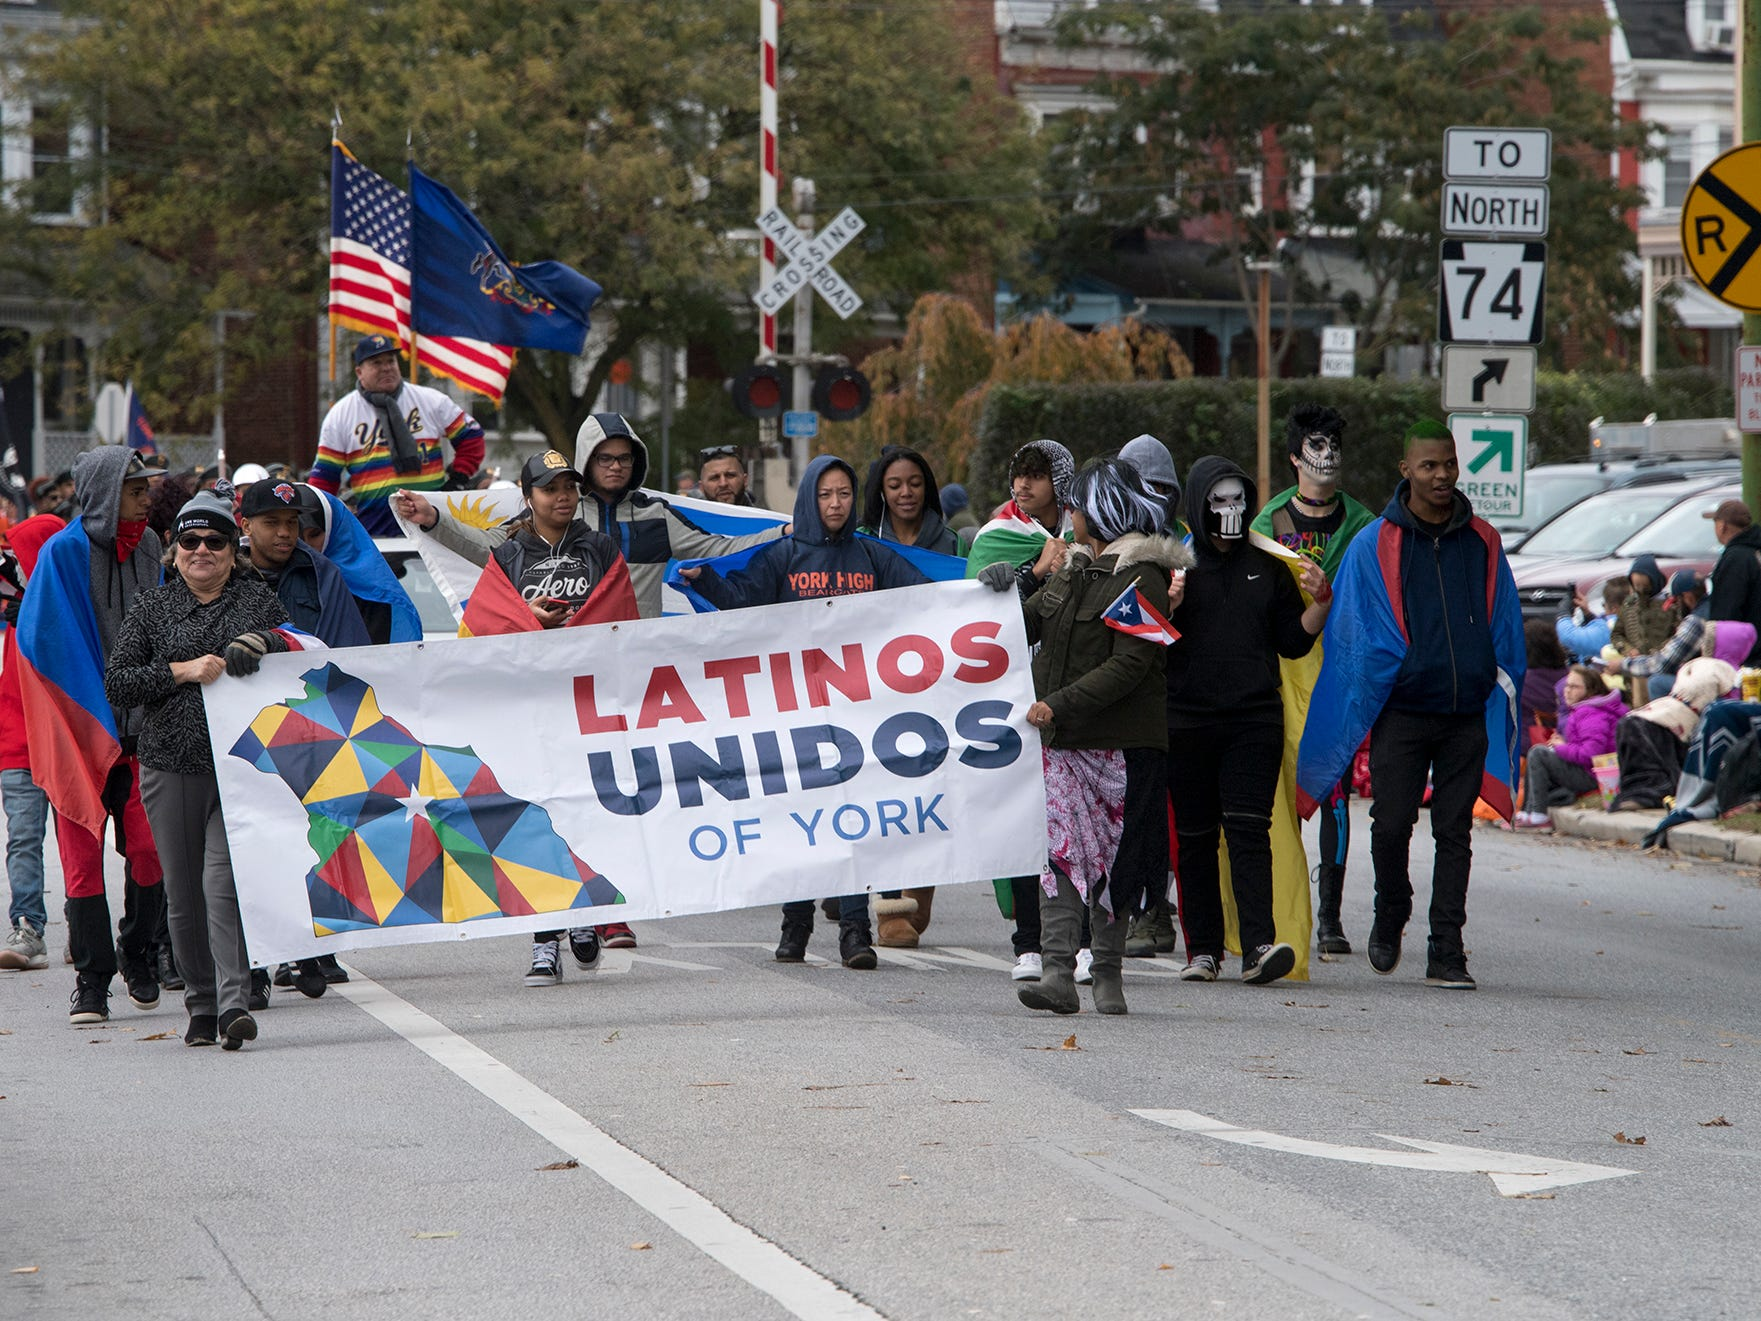 Latinos Unidos of York opens the 69th Annual York Halloween Parade presented by York Traditions Bank Sunday in York works its way east on Market Street.